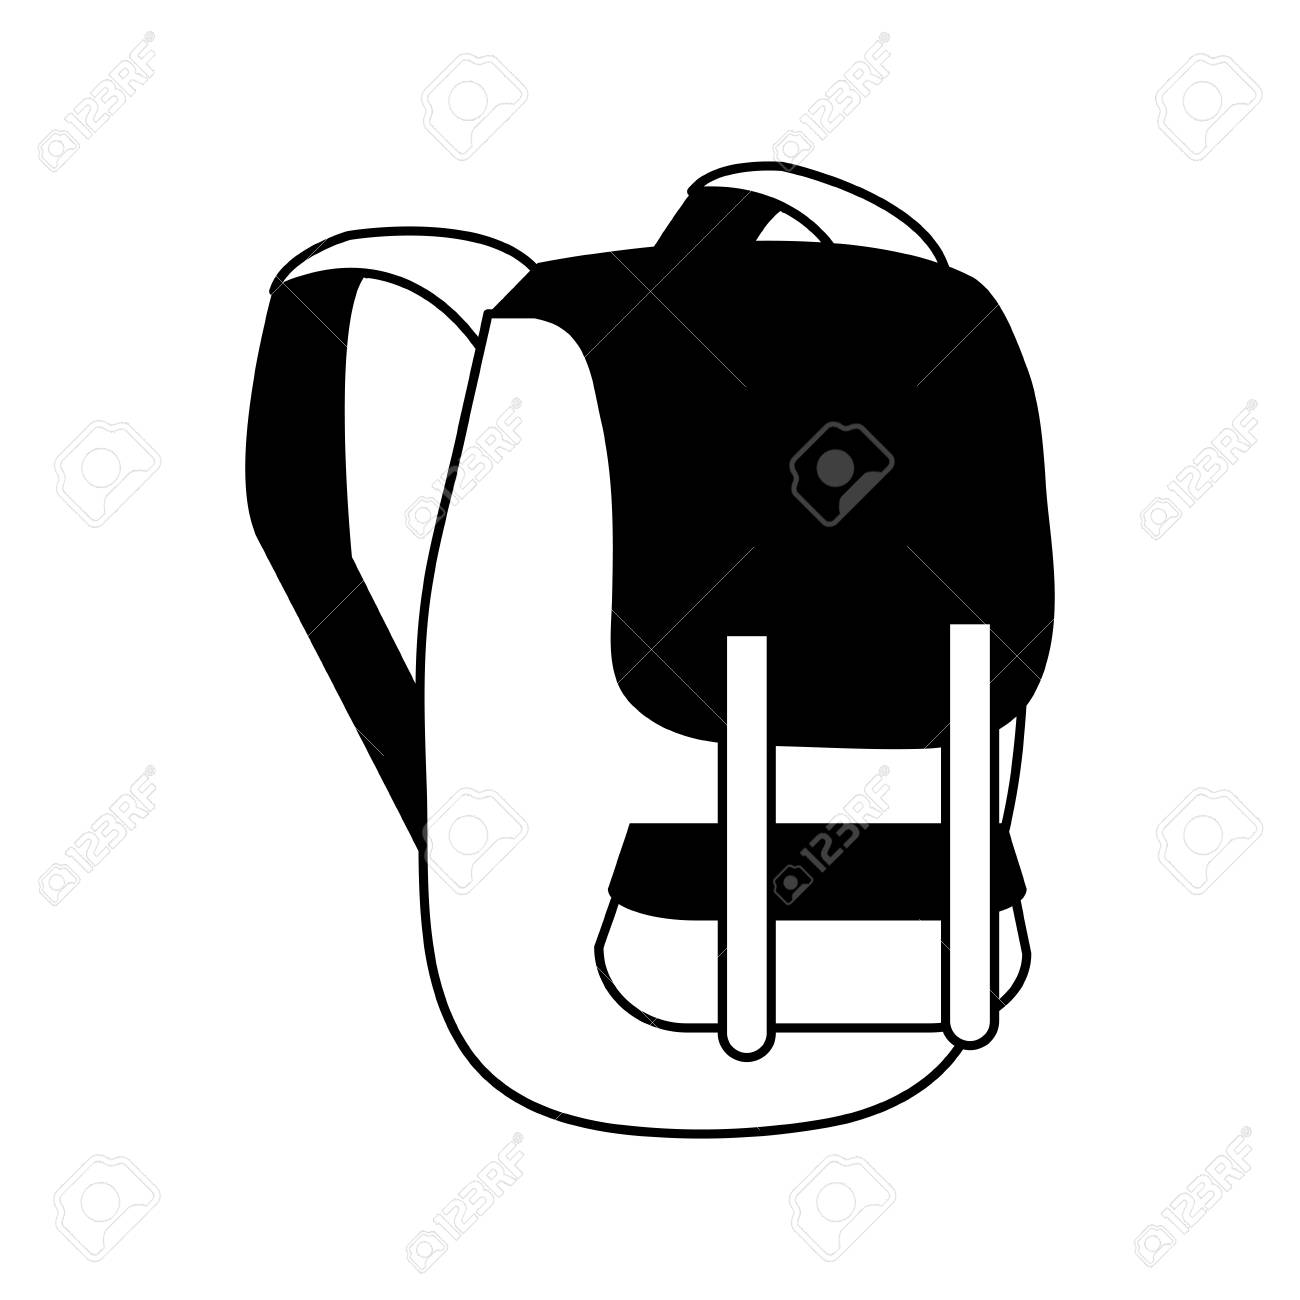 Travel Backpack Icon Image Vector Illustration Design Black And White Stock